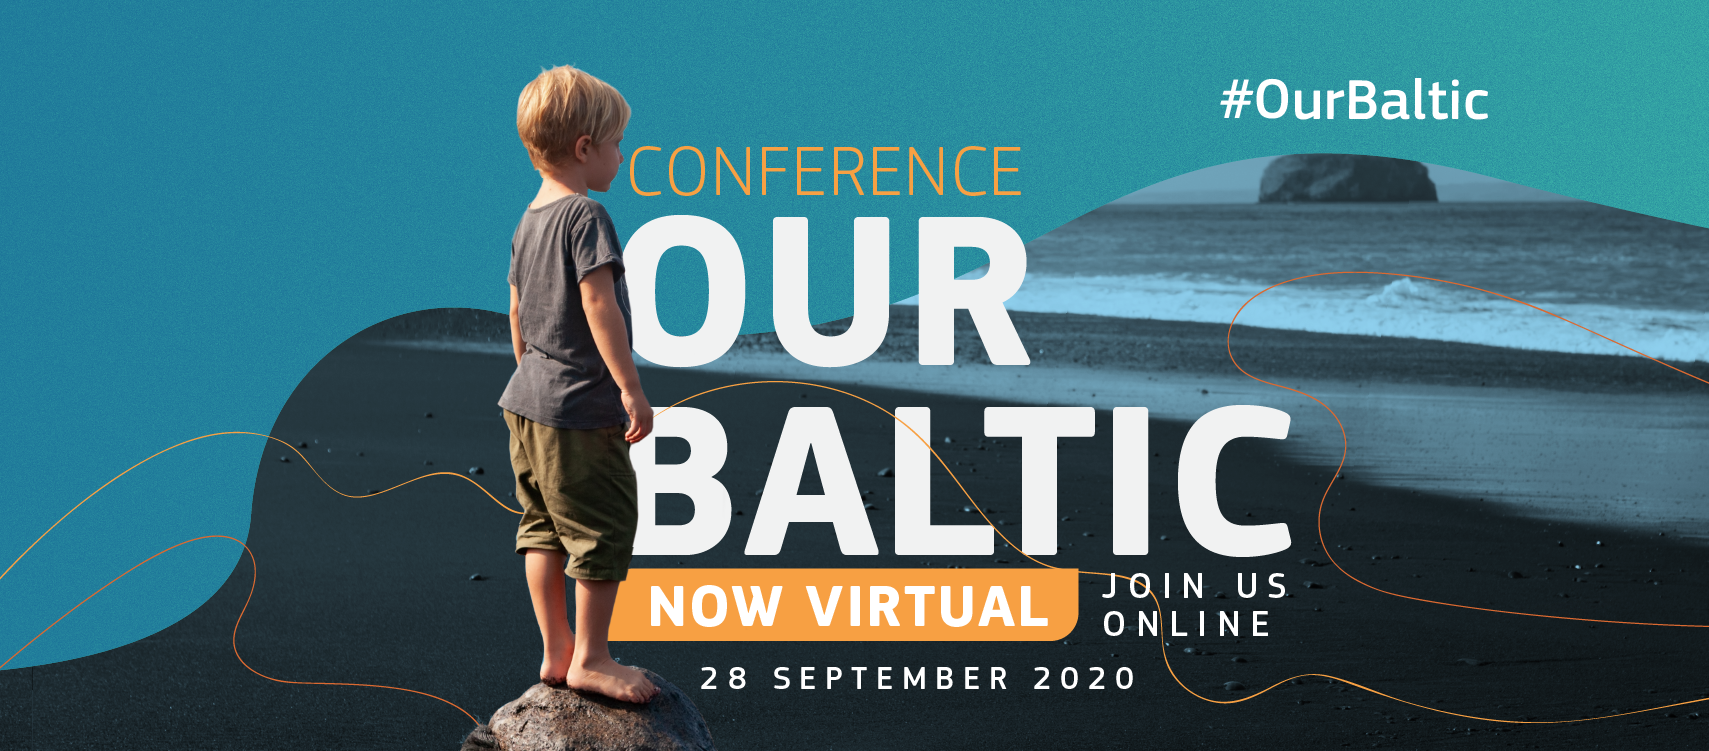 Our Baltic Conference